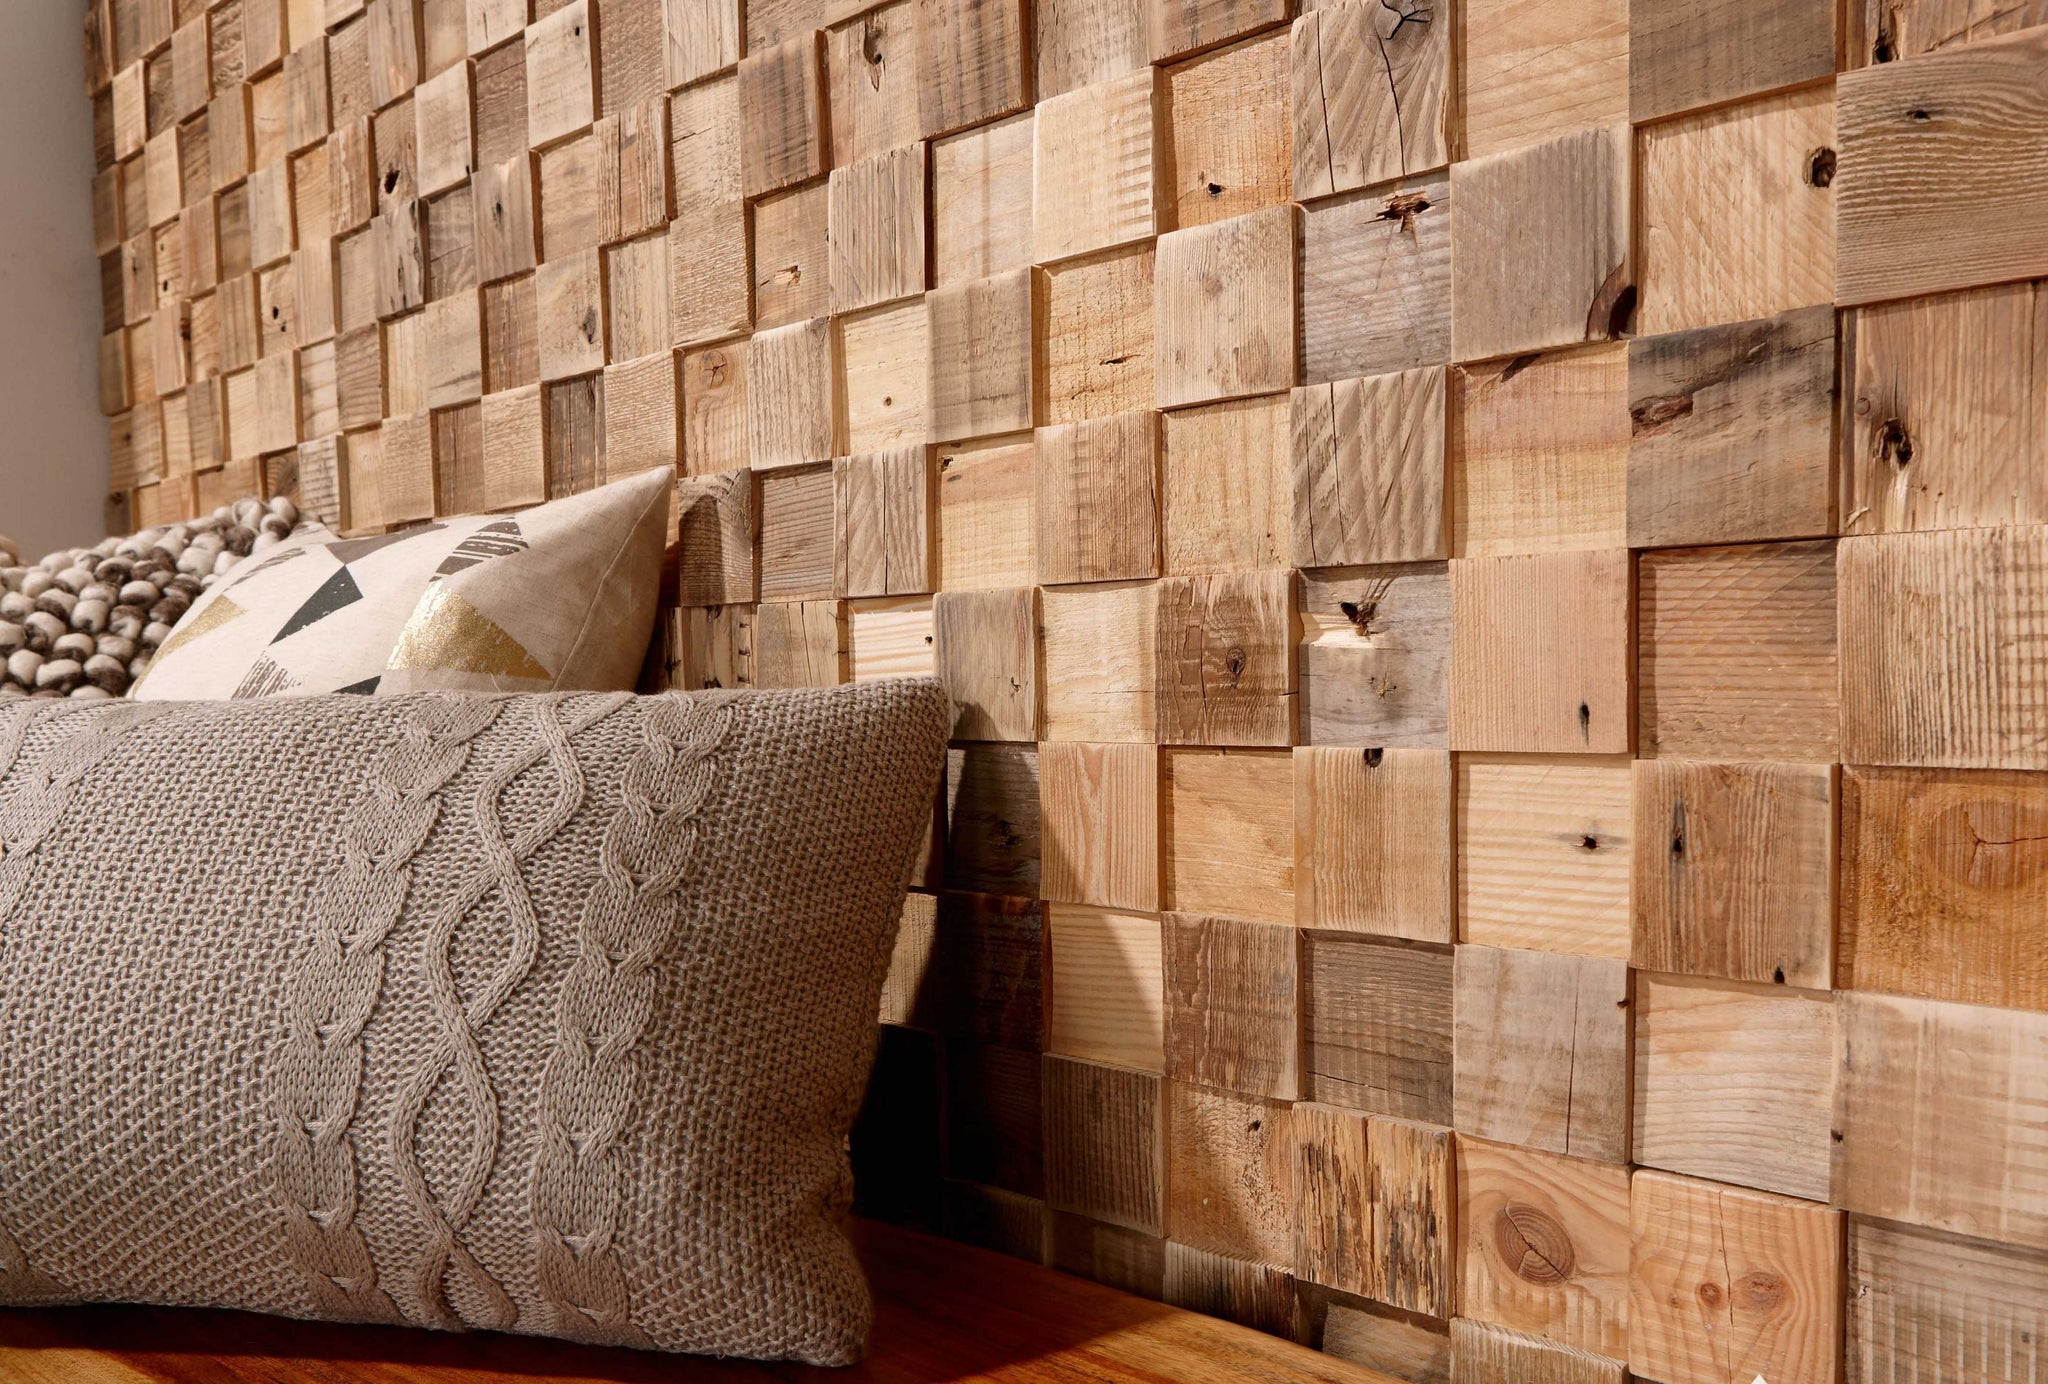 Feature Wood Walls Timberwall New Zealand Introduces The New Reclaimed